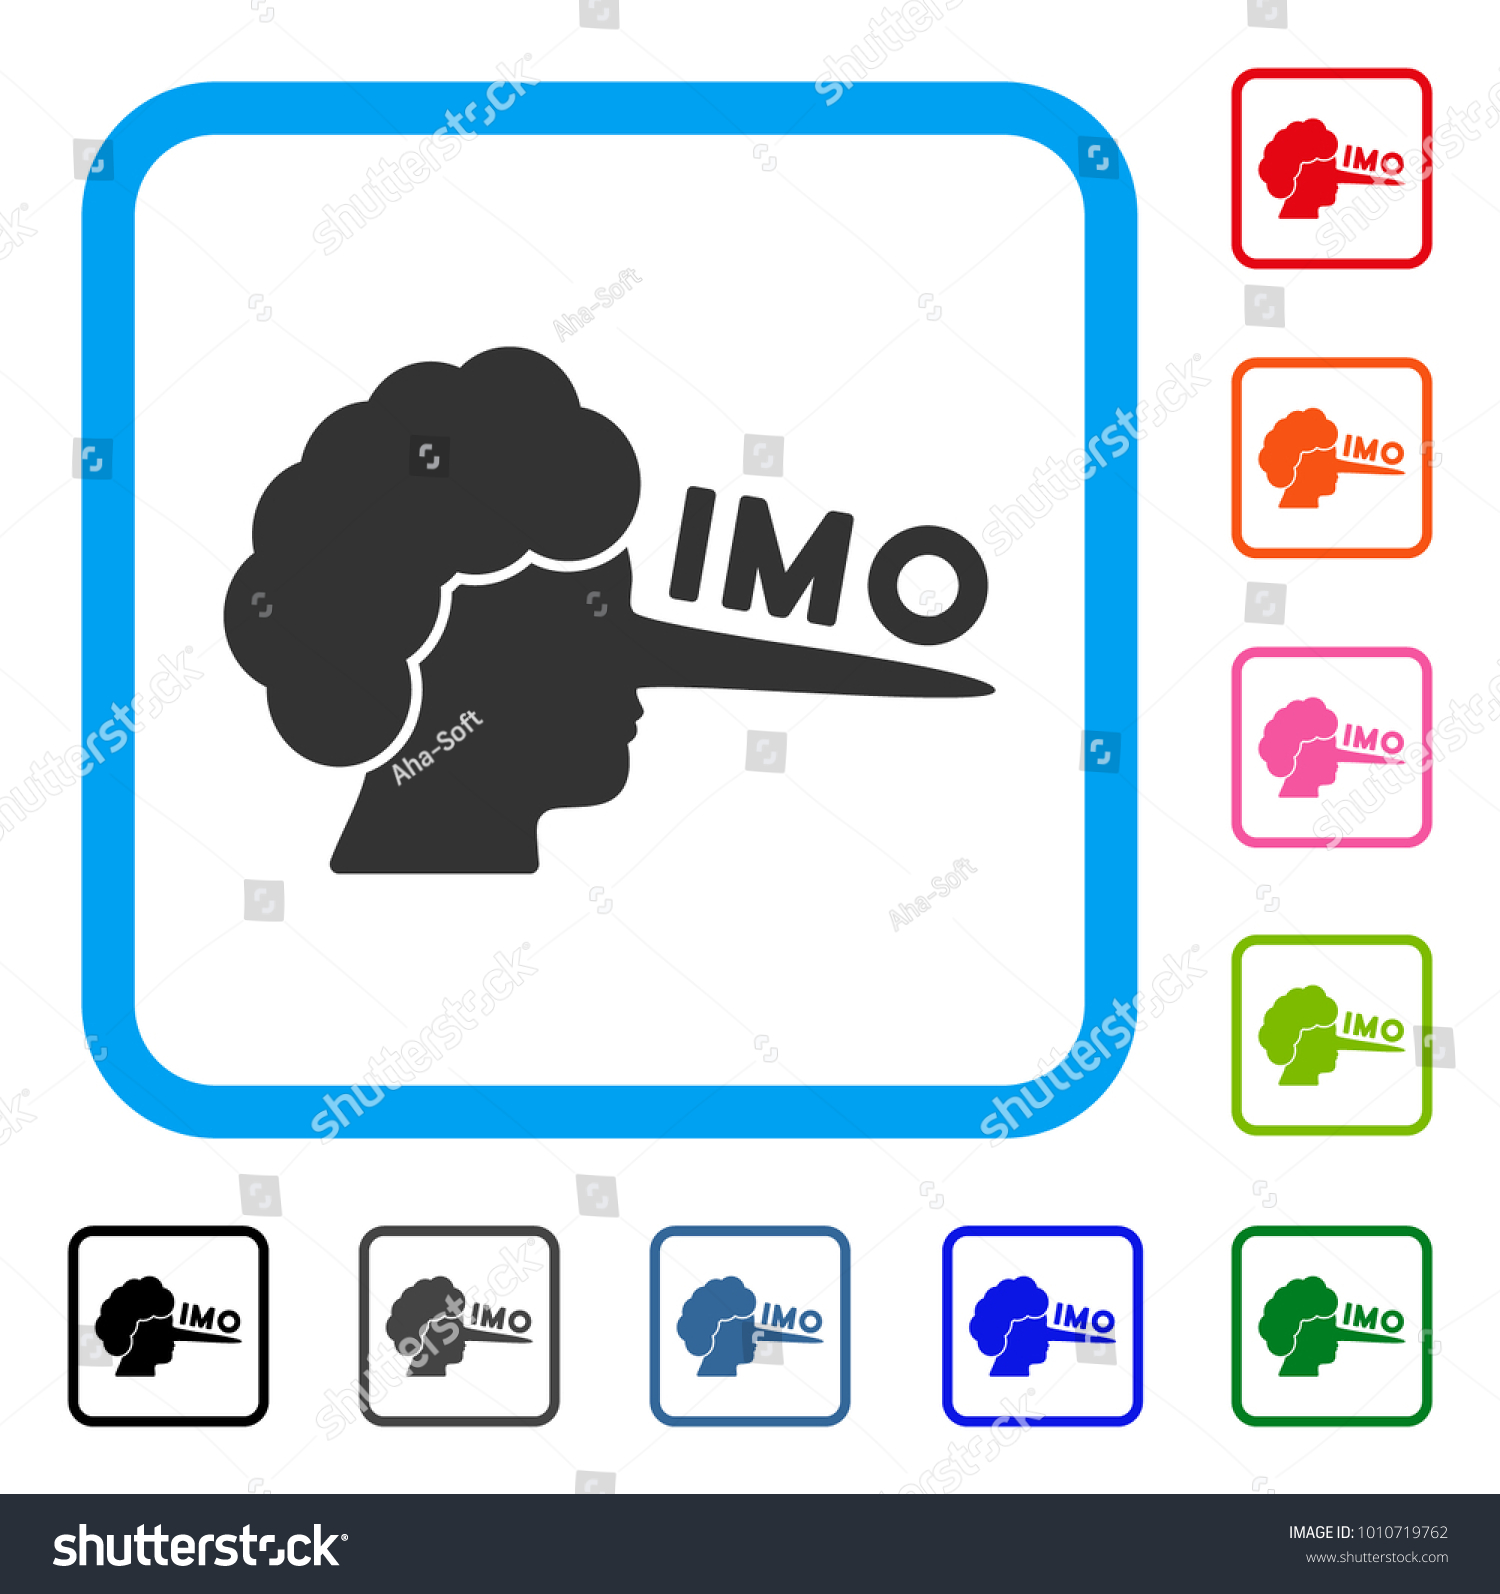 Imo Lier Icon Flat Grey Pictogram Stock Vector 1010719762 Shutterstock